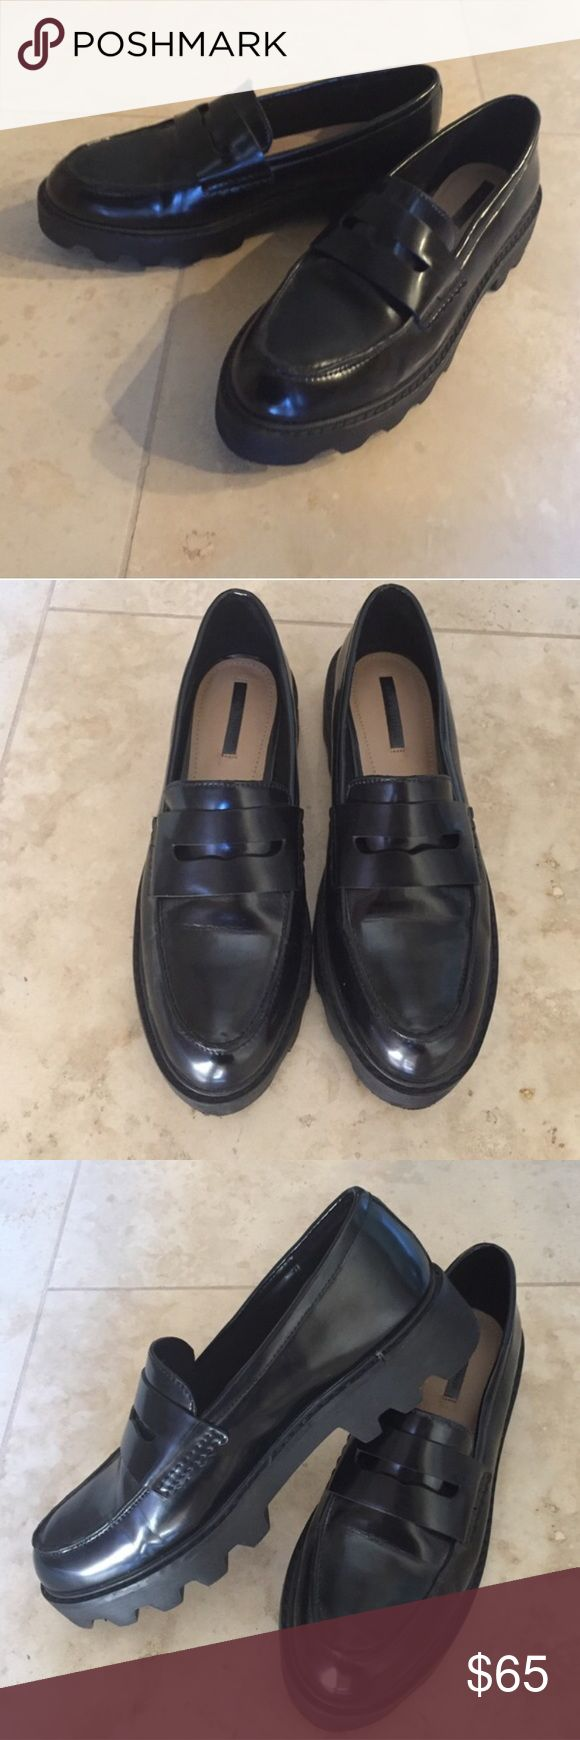 Zara Chunky Loafers These shoes are brand new, hasn't been used, it's in great condition, good quality Zara Shoes Flats & Loafers